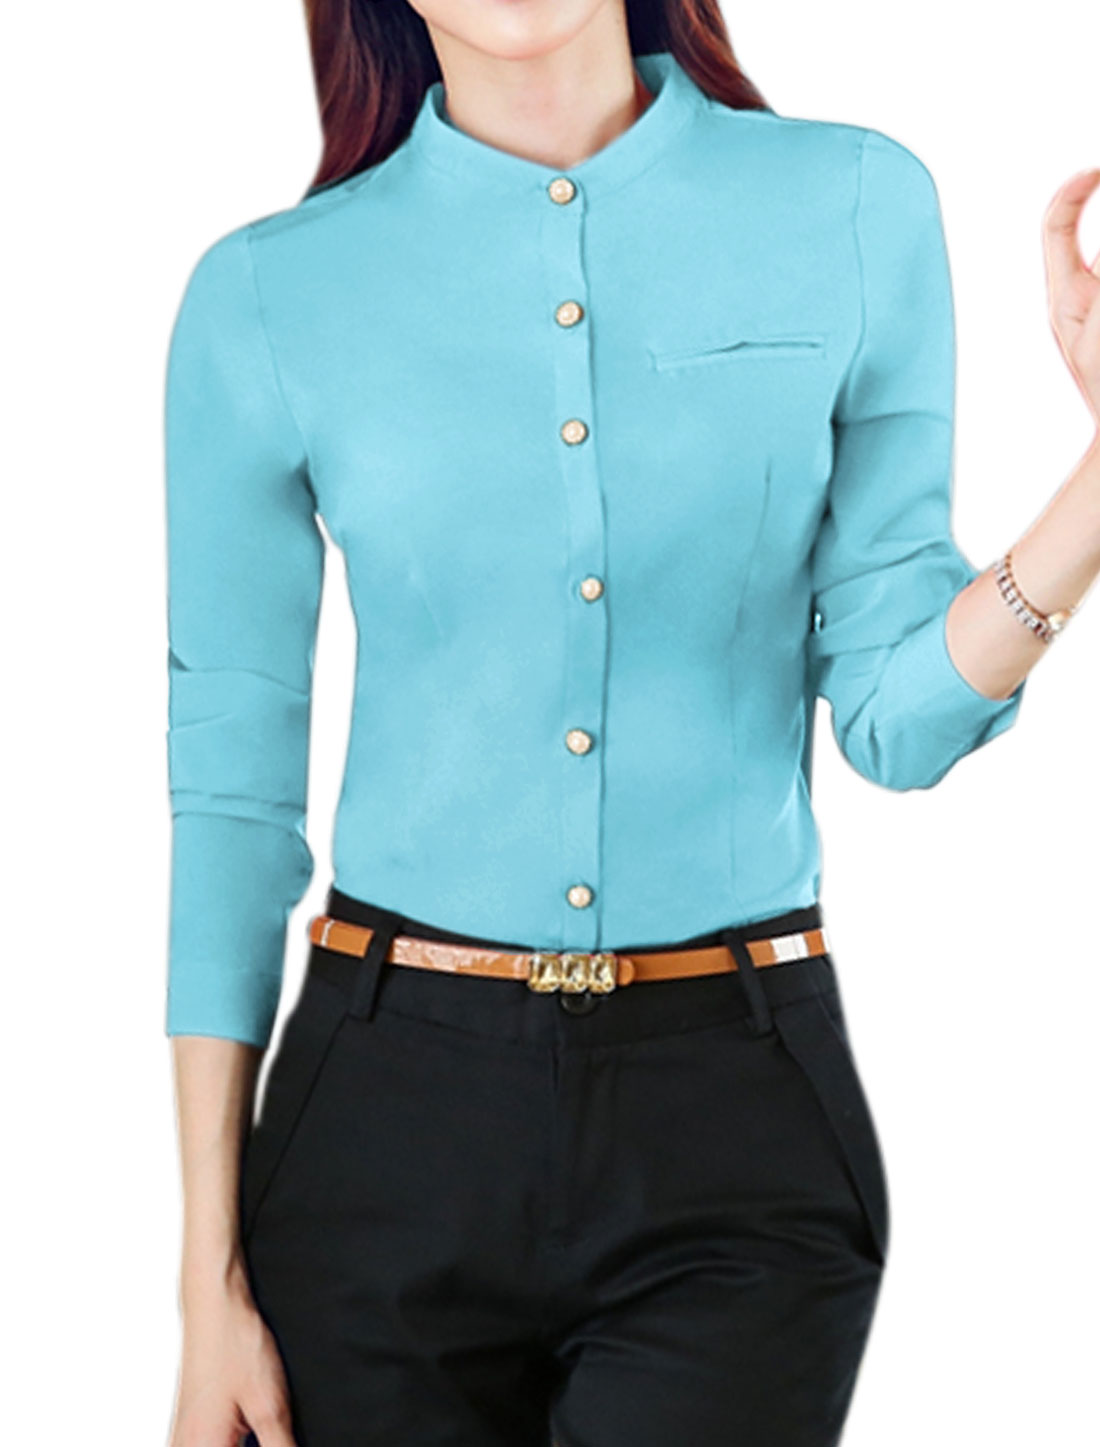 Women Stand Collar Single Breasted Slim Fit Shirt Blue L